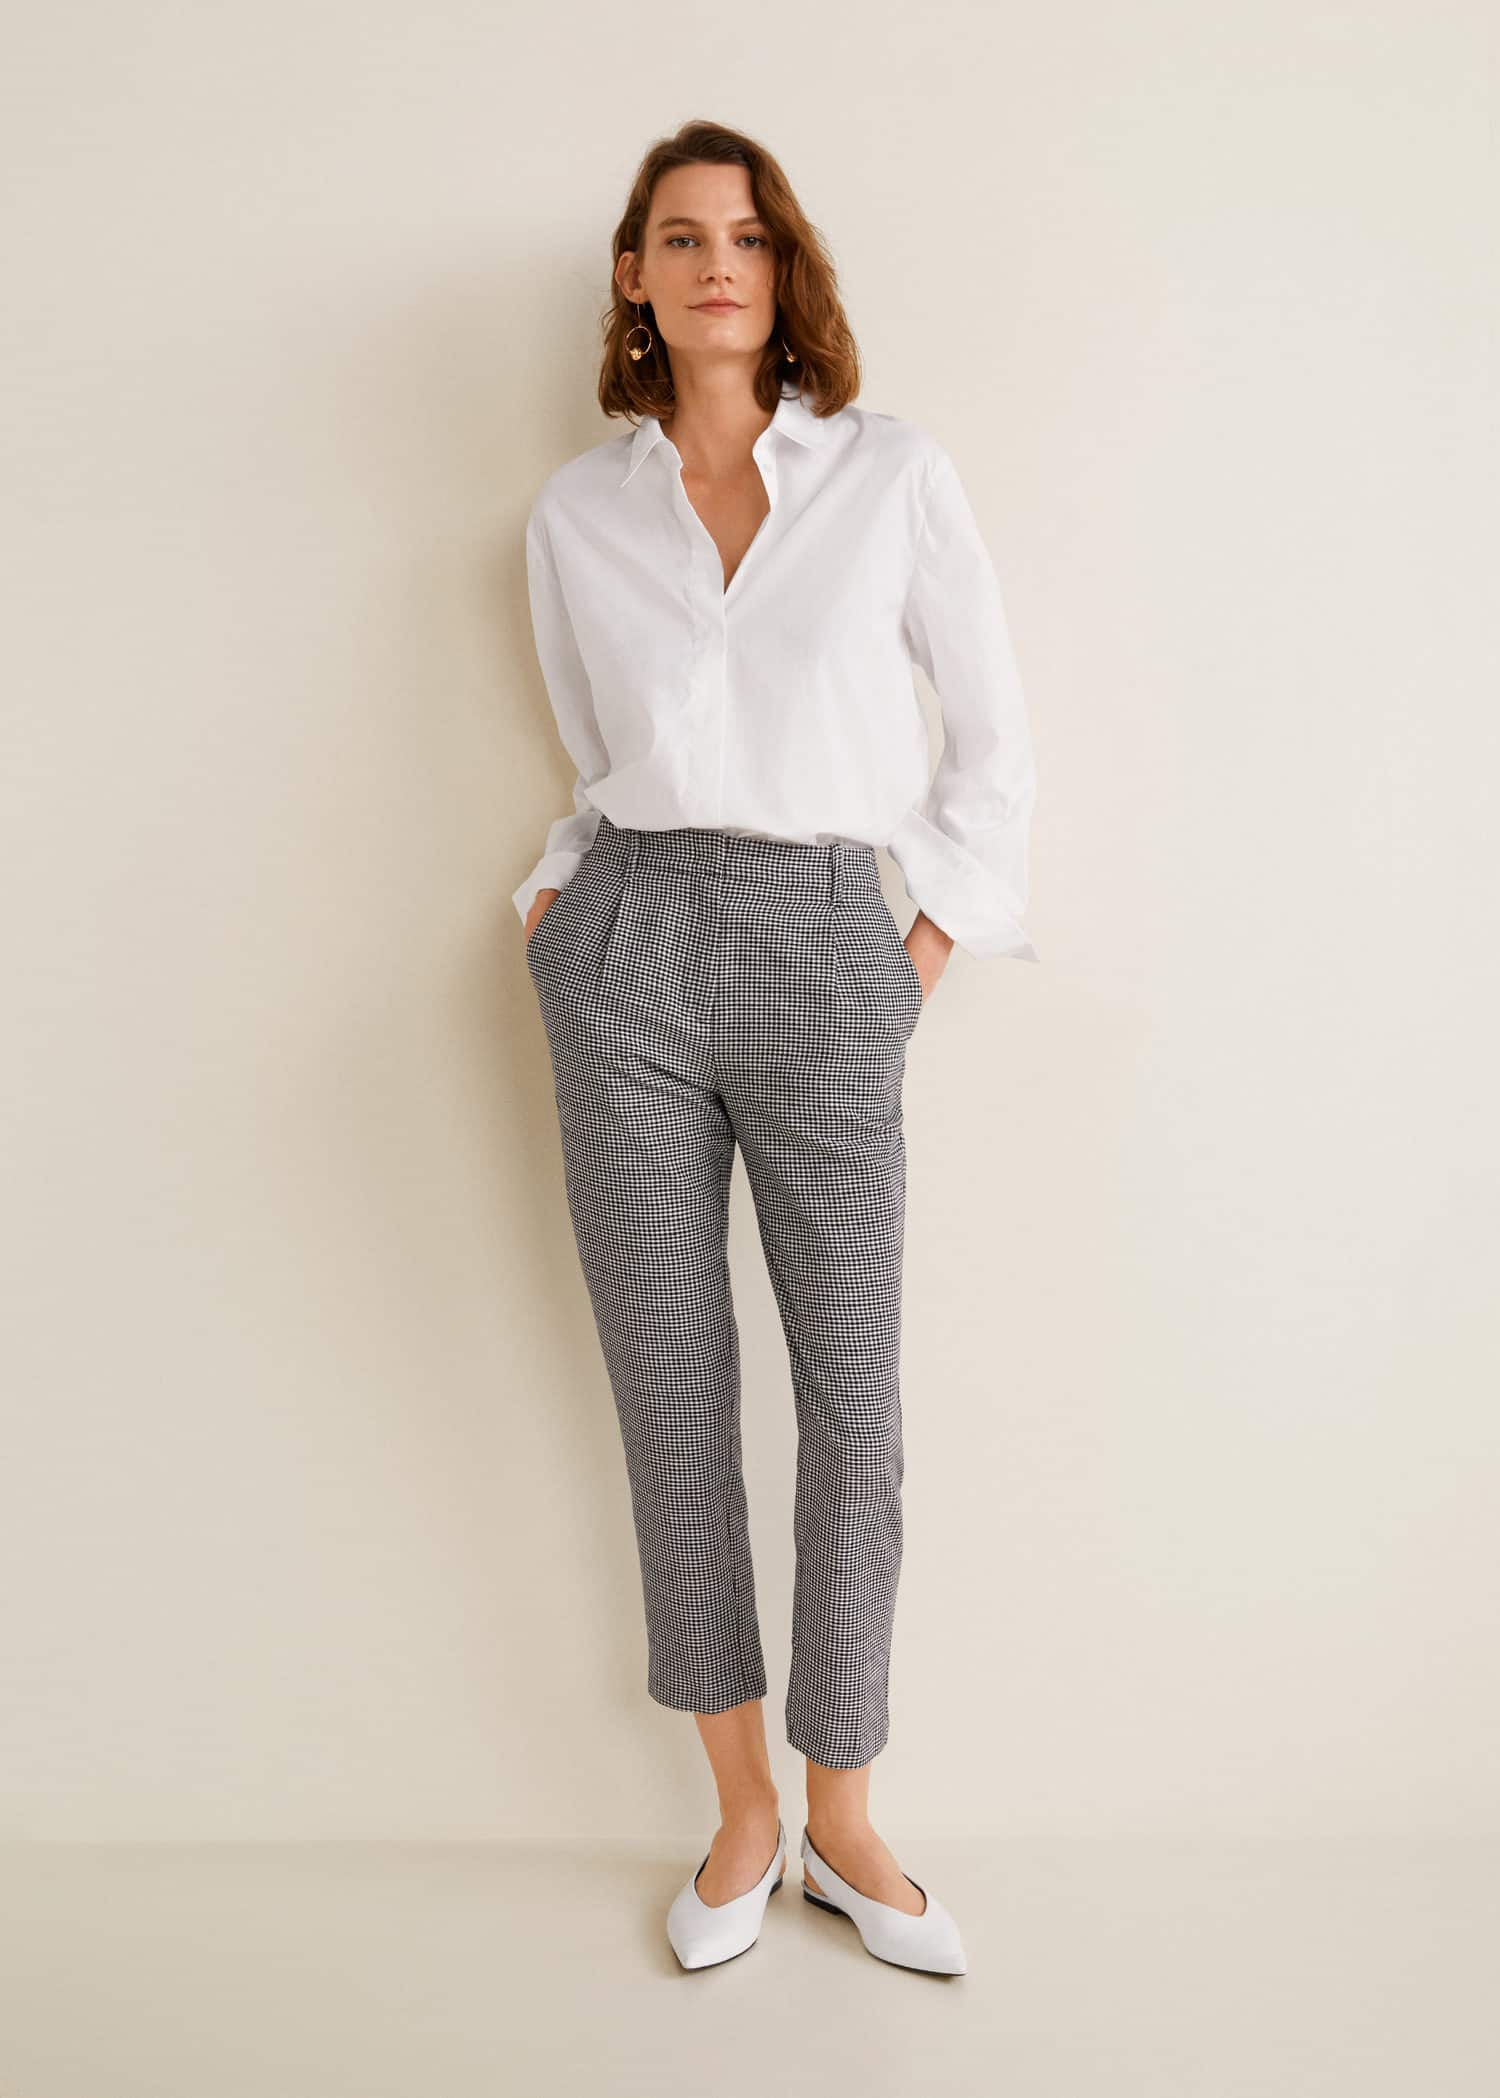 Pattern Gingham Pattern Check Trousers Pattern Trousers Check Gingham Gingham Check SzMUVpq